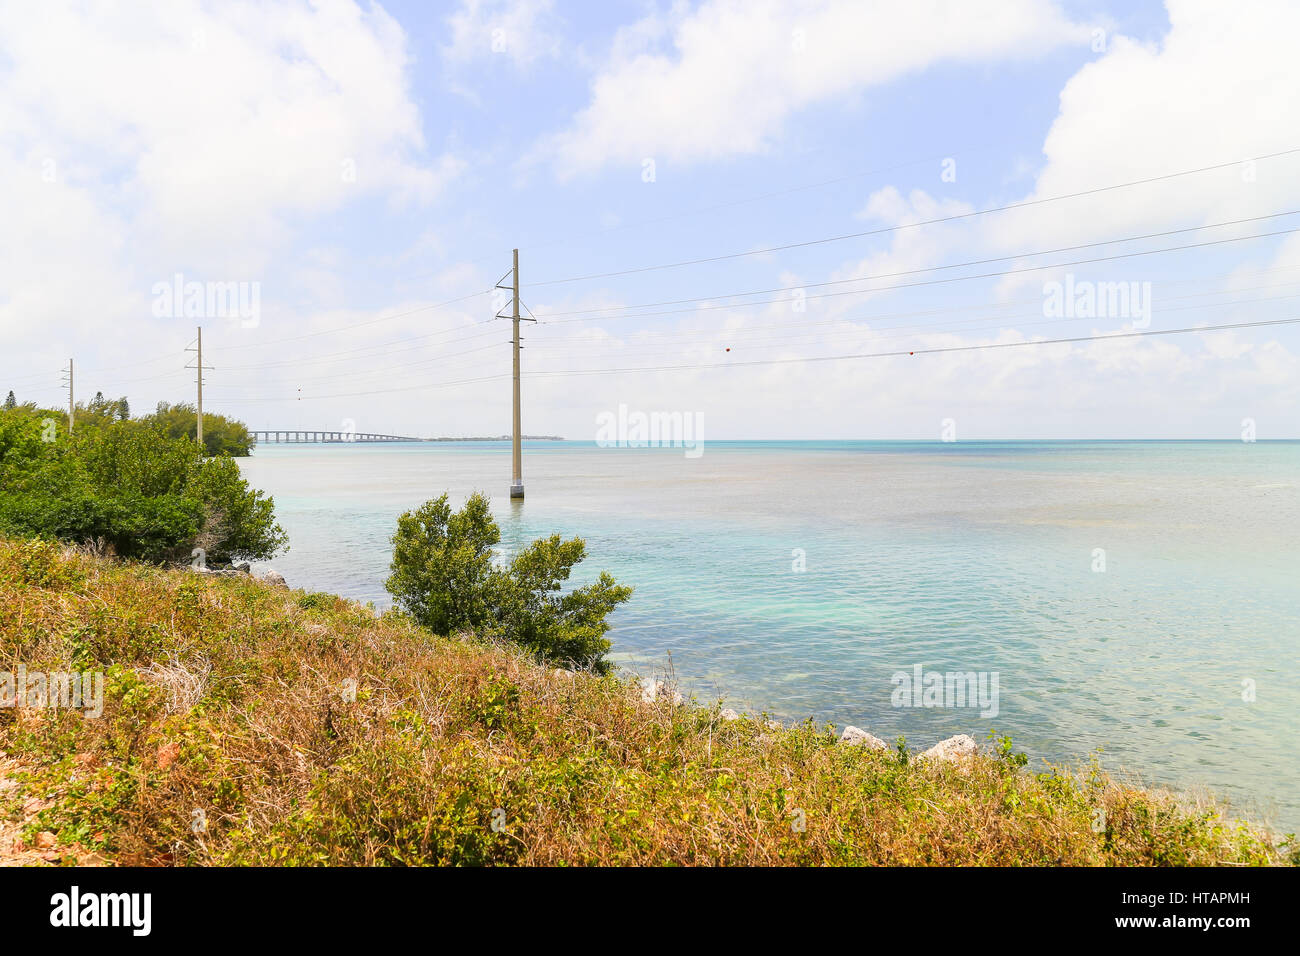 View from the Overseas Highway on the coastline of the Florida Keys. Stock Photo